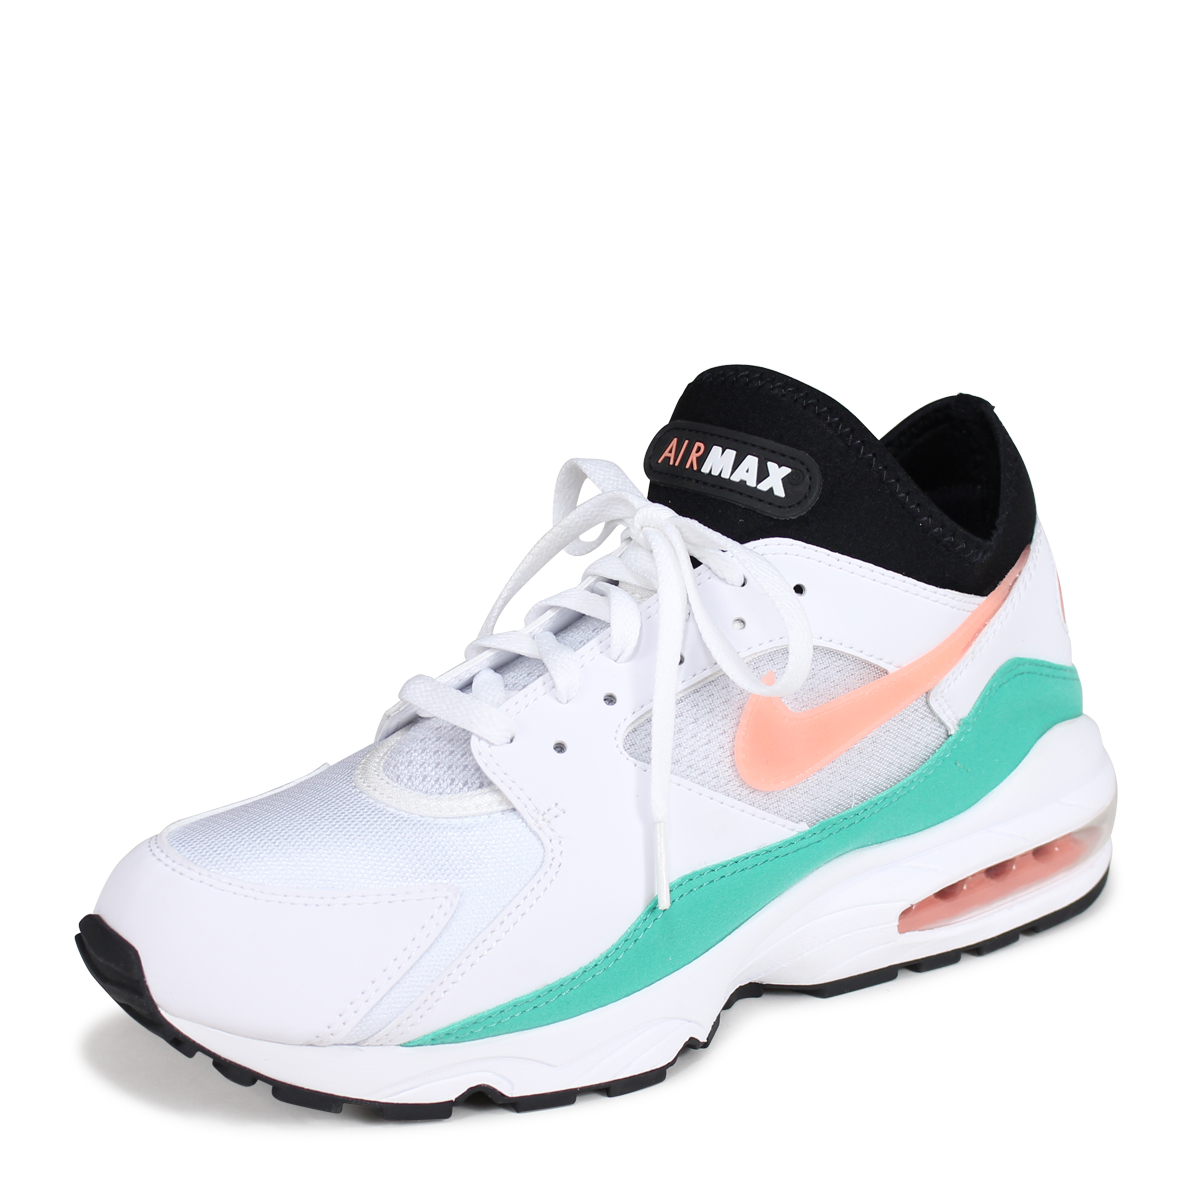 pretty nice 7e992 f31bf NIKE AIR MAX 93 WATERMELON Kie Ney AMAX 93 sneakers men 306,551-105 white  load planned Shinnyu load in reservation product 719 containing 187